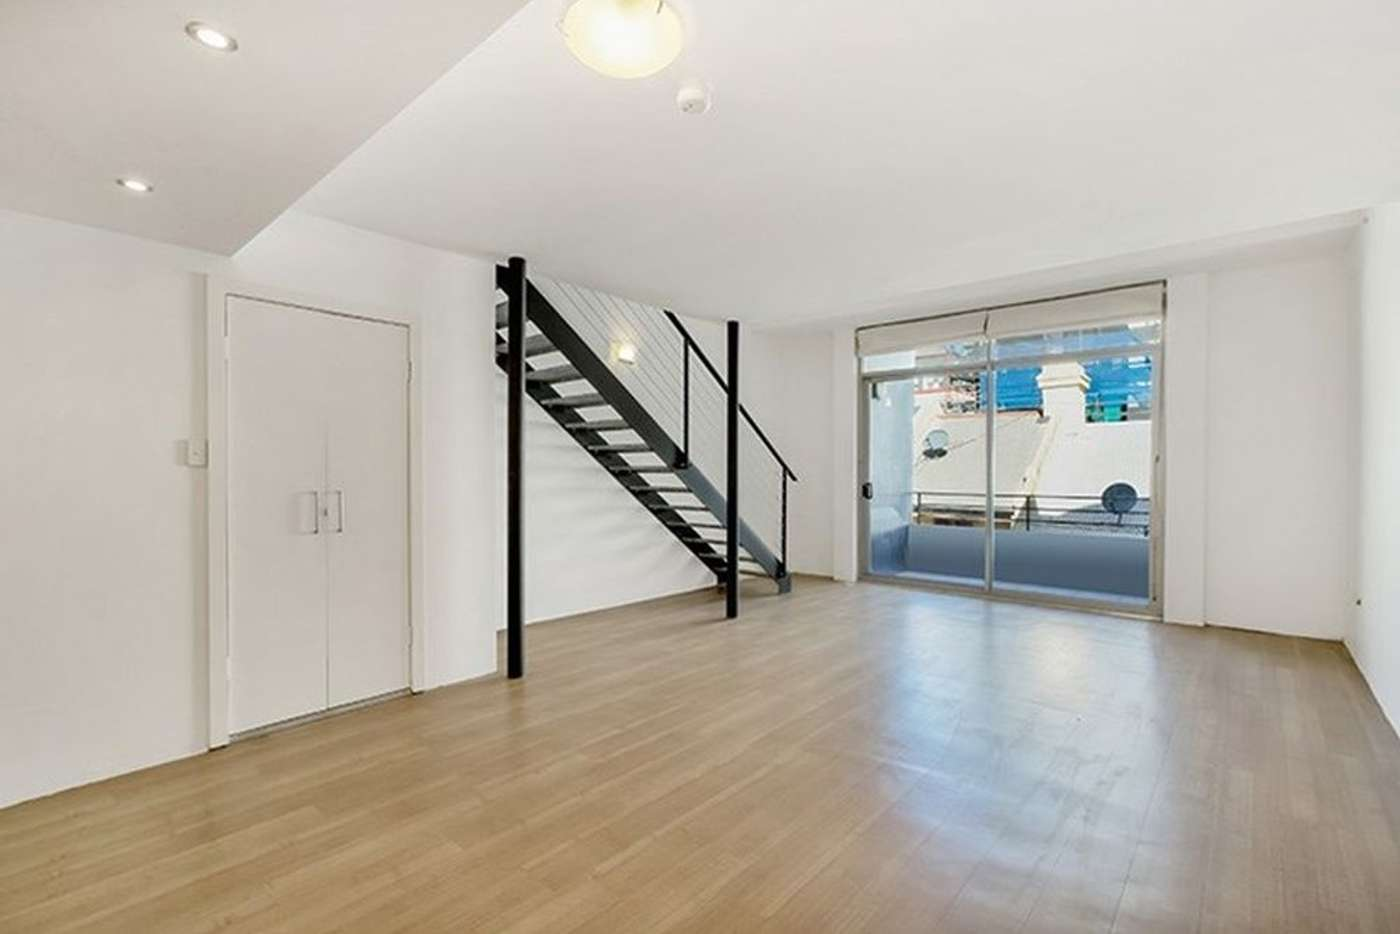 Main view of Homely apartment listing, 21/8-14 Brumby Street, Surry Hills NSW 2010